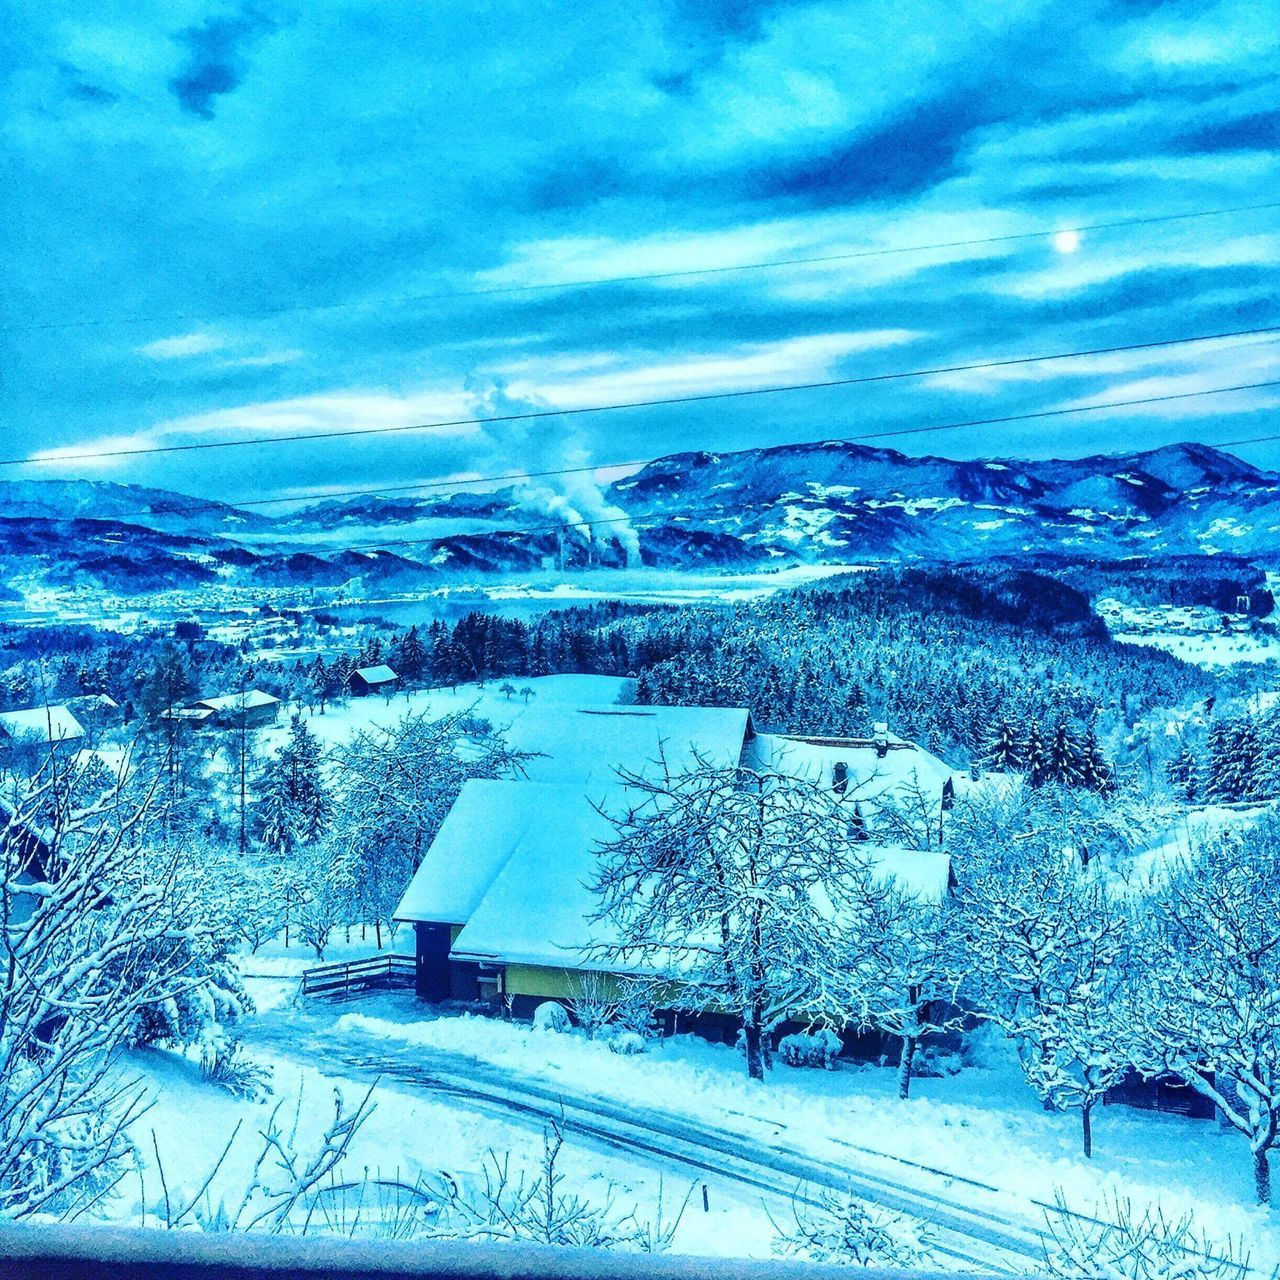 ❄ Winter Snow Thermalpowerplant Mountains View View From The Window... View From Above EyeEm Best Shots EyeEm Nature Lover Eye4photography  Sellphotos Cold Temperature Lake Frozen Frozen Lake Frozen Nature Blue Sky IPhoneography Road Travel Destinations Dramatic Sky Cloud - Sky Sunset EyeEm